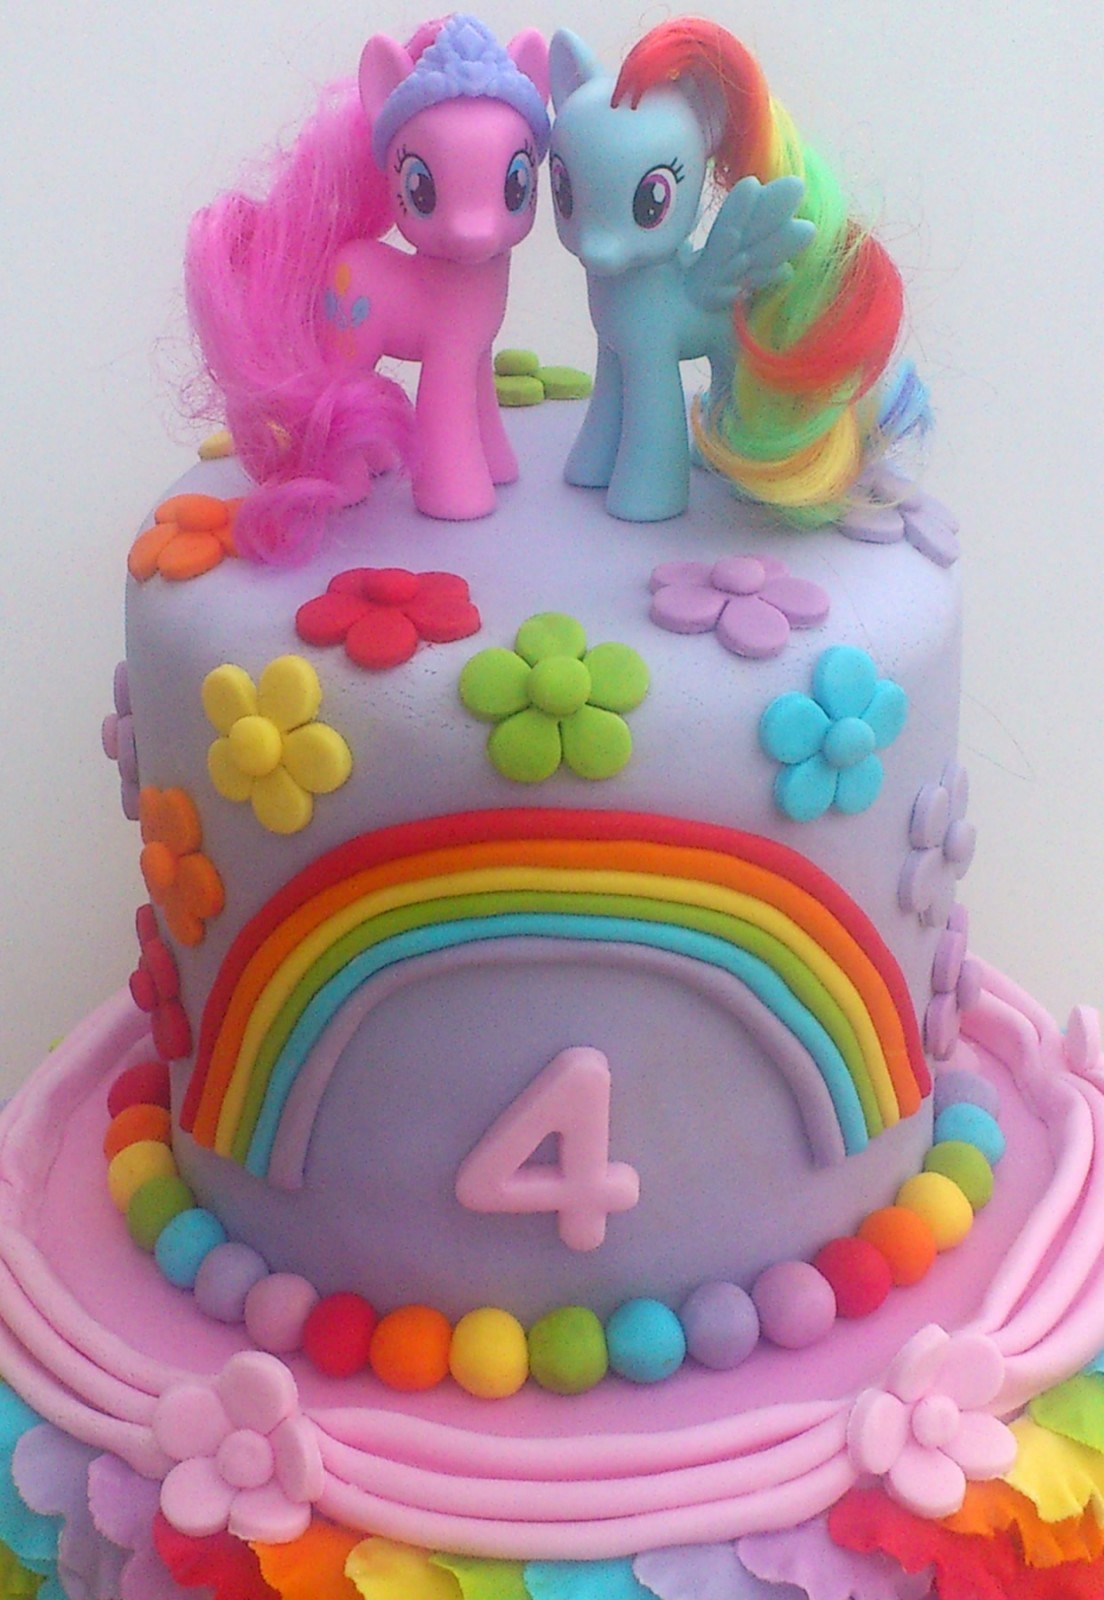 Birthday Cake Little Pony Image Inspiration of Cake and Birthday